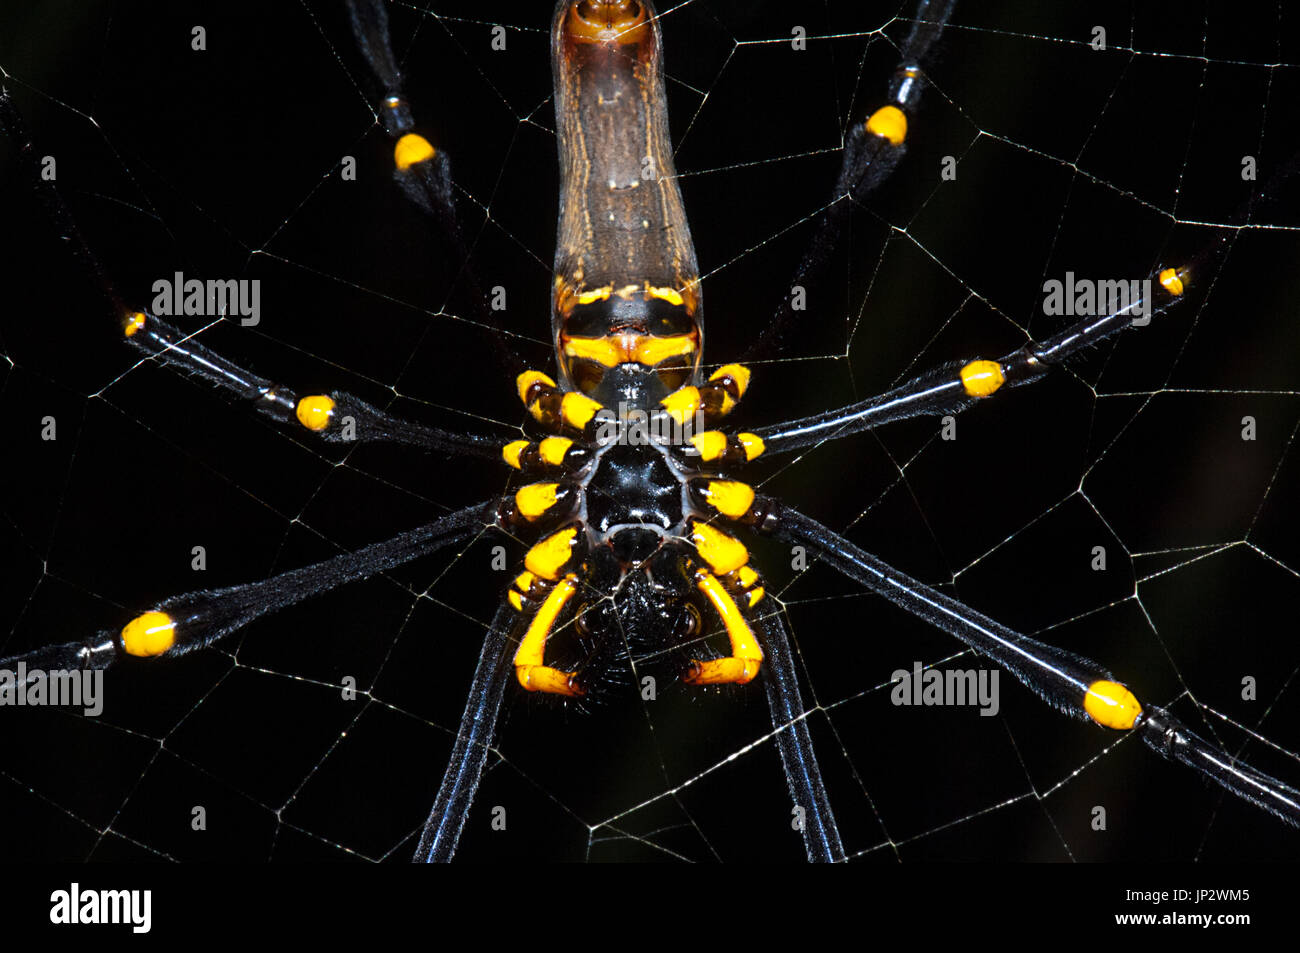 ventral-view-of-a-giant-golden-orb-weave